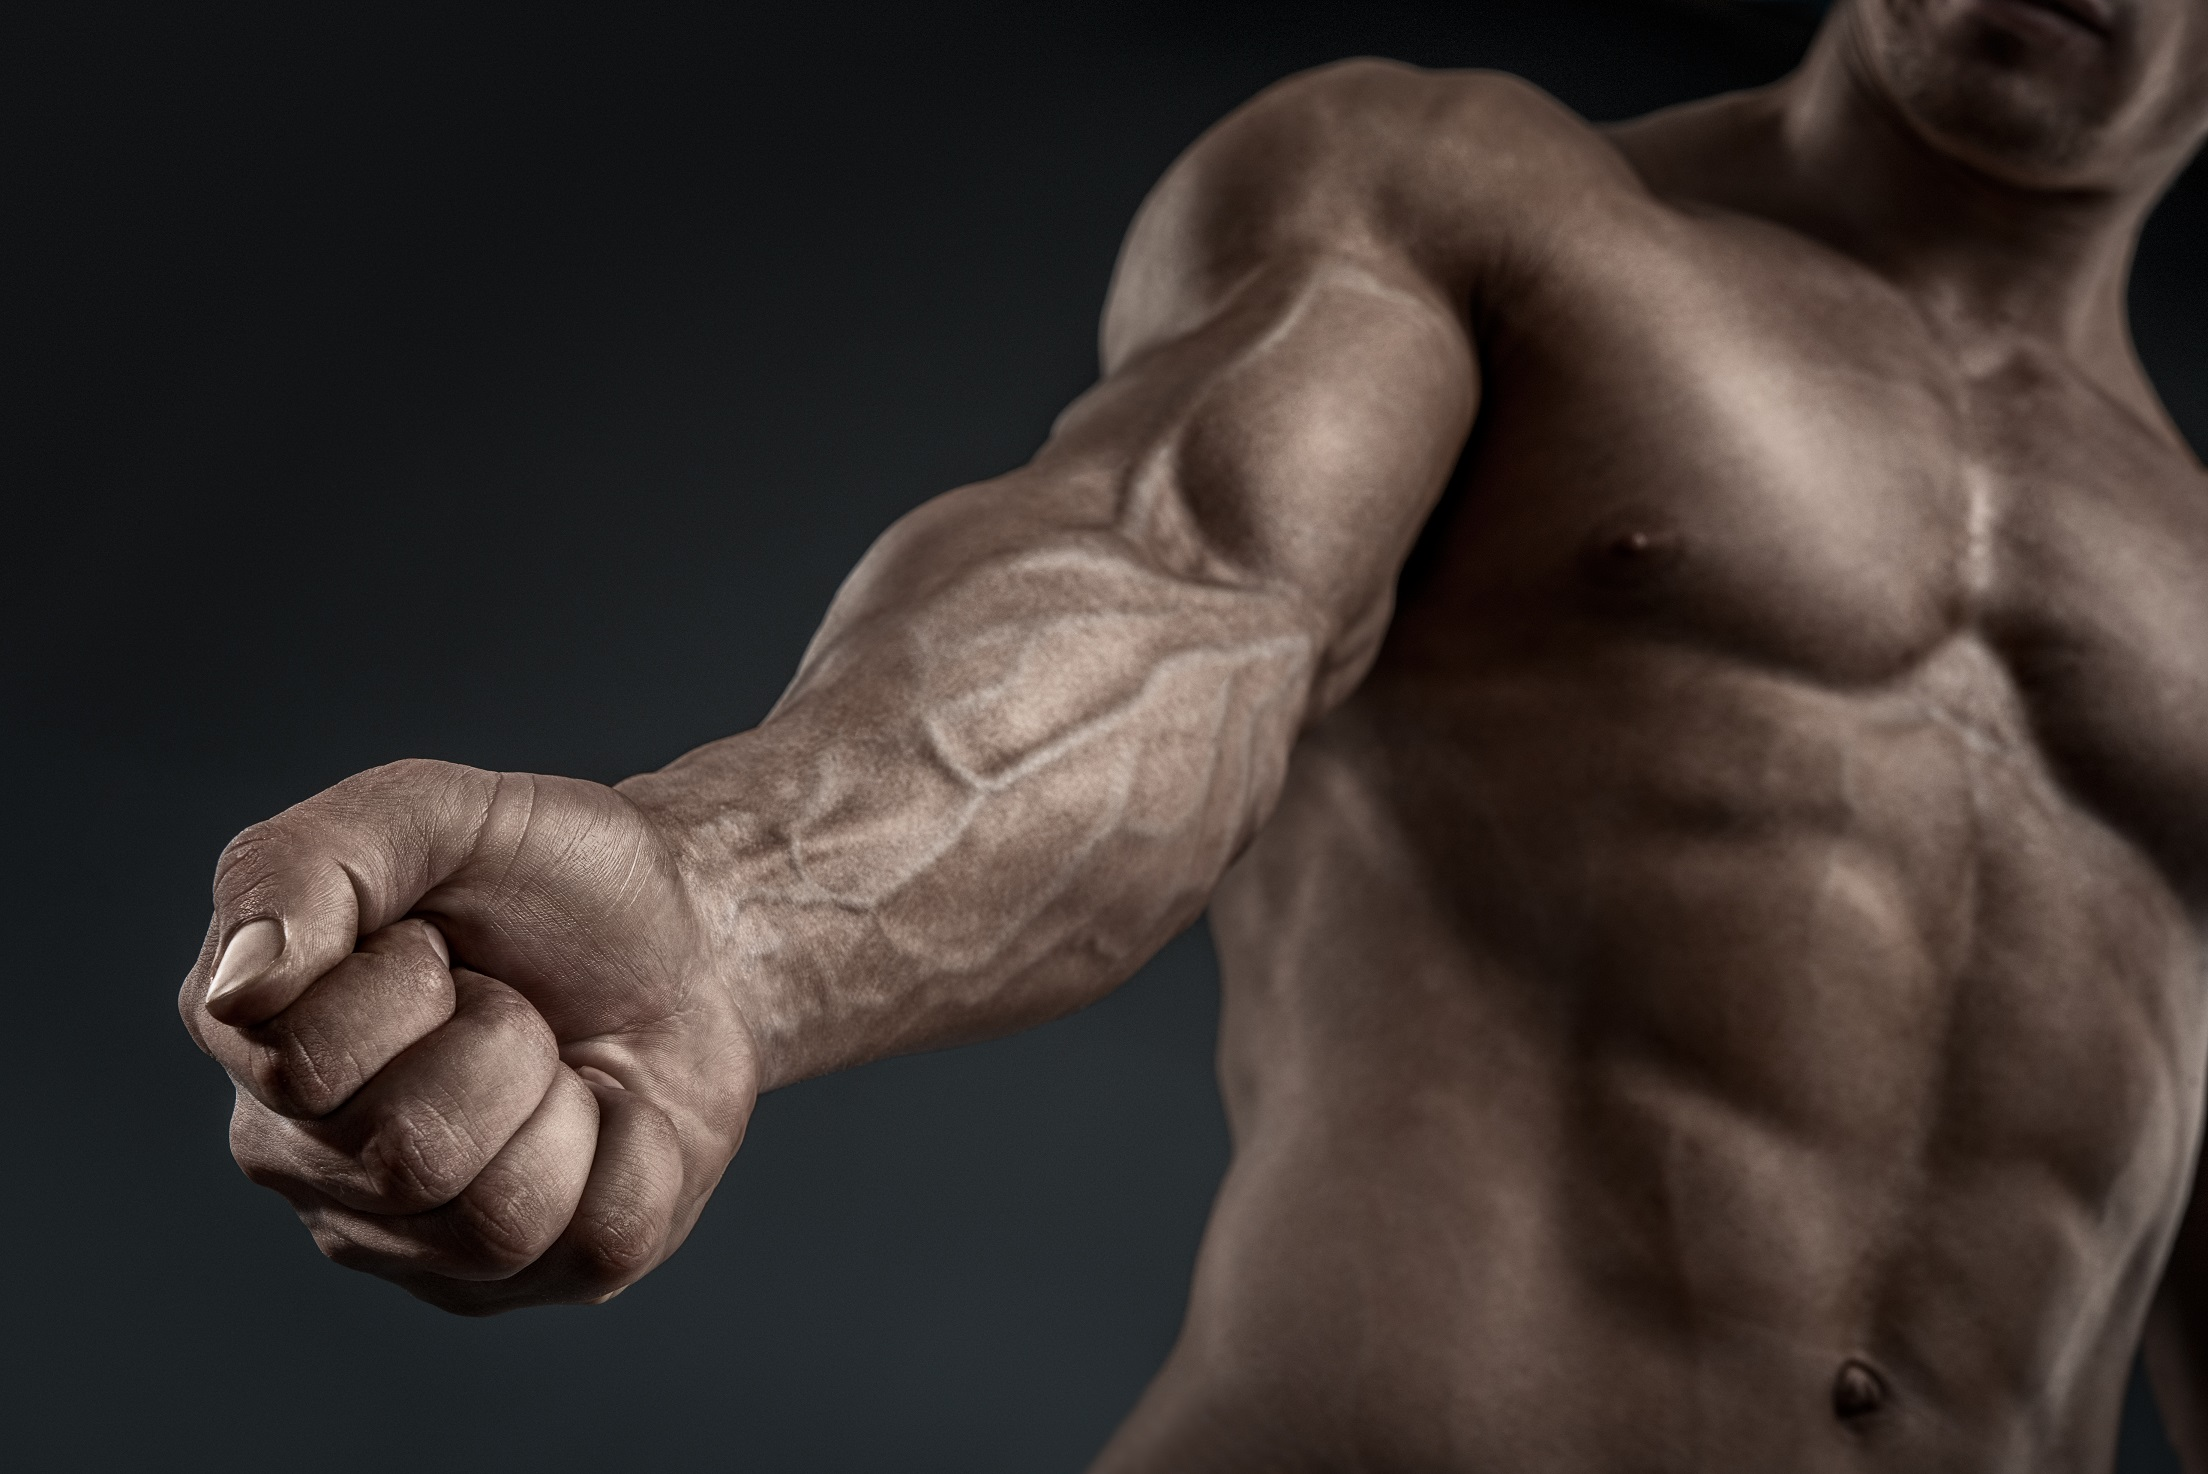 Forearm flexors and grip muscles